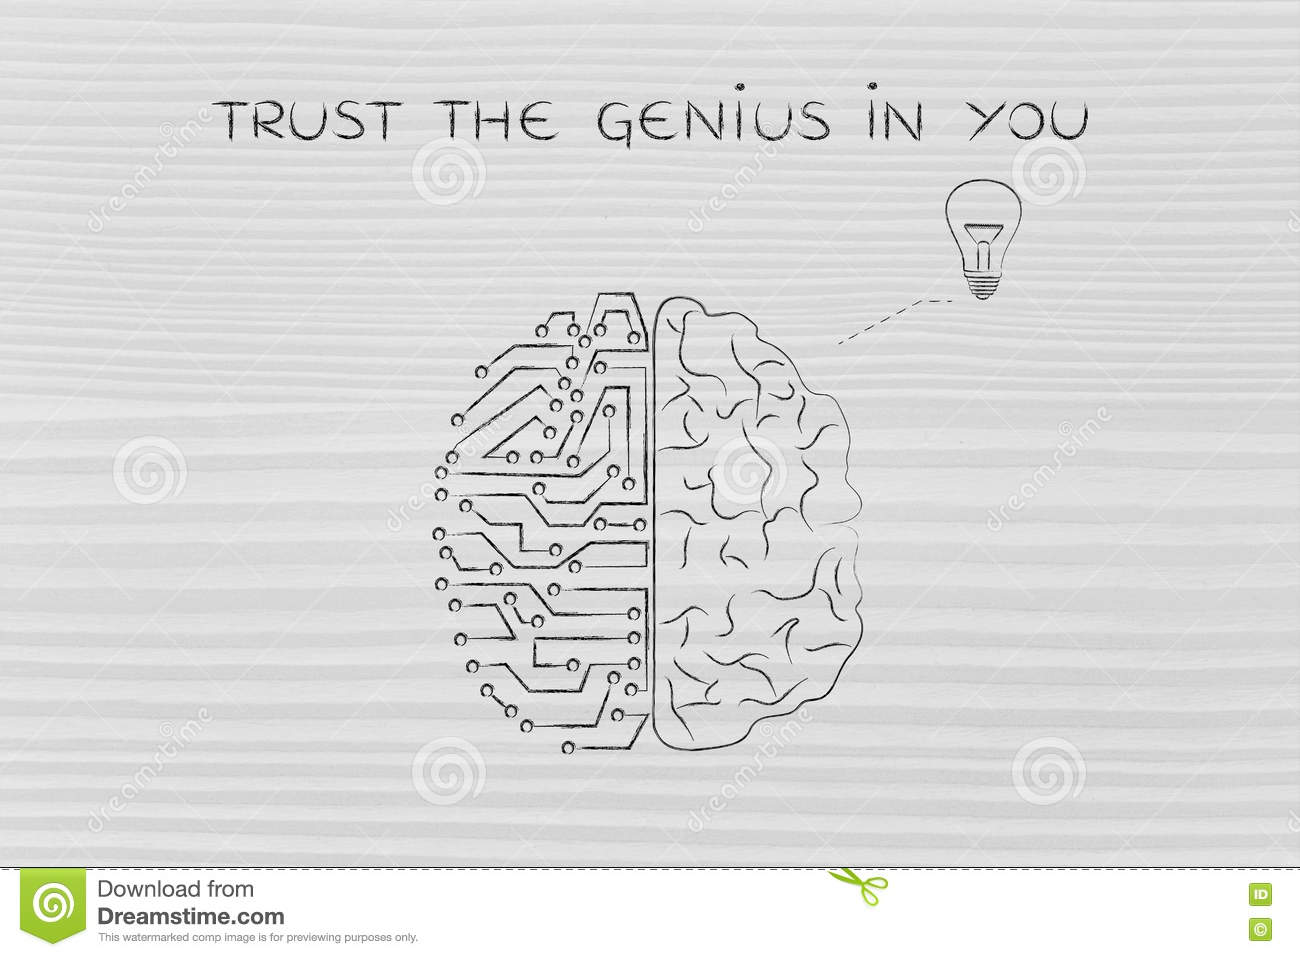 Human and circuit brain having an idea, trust the genius in you